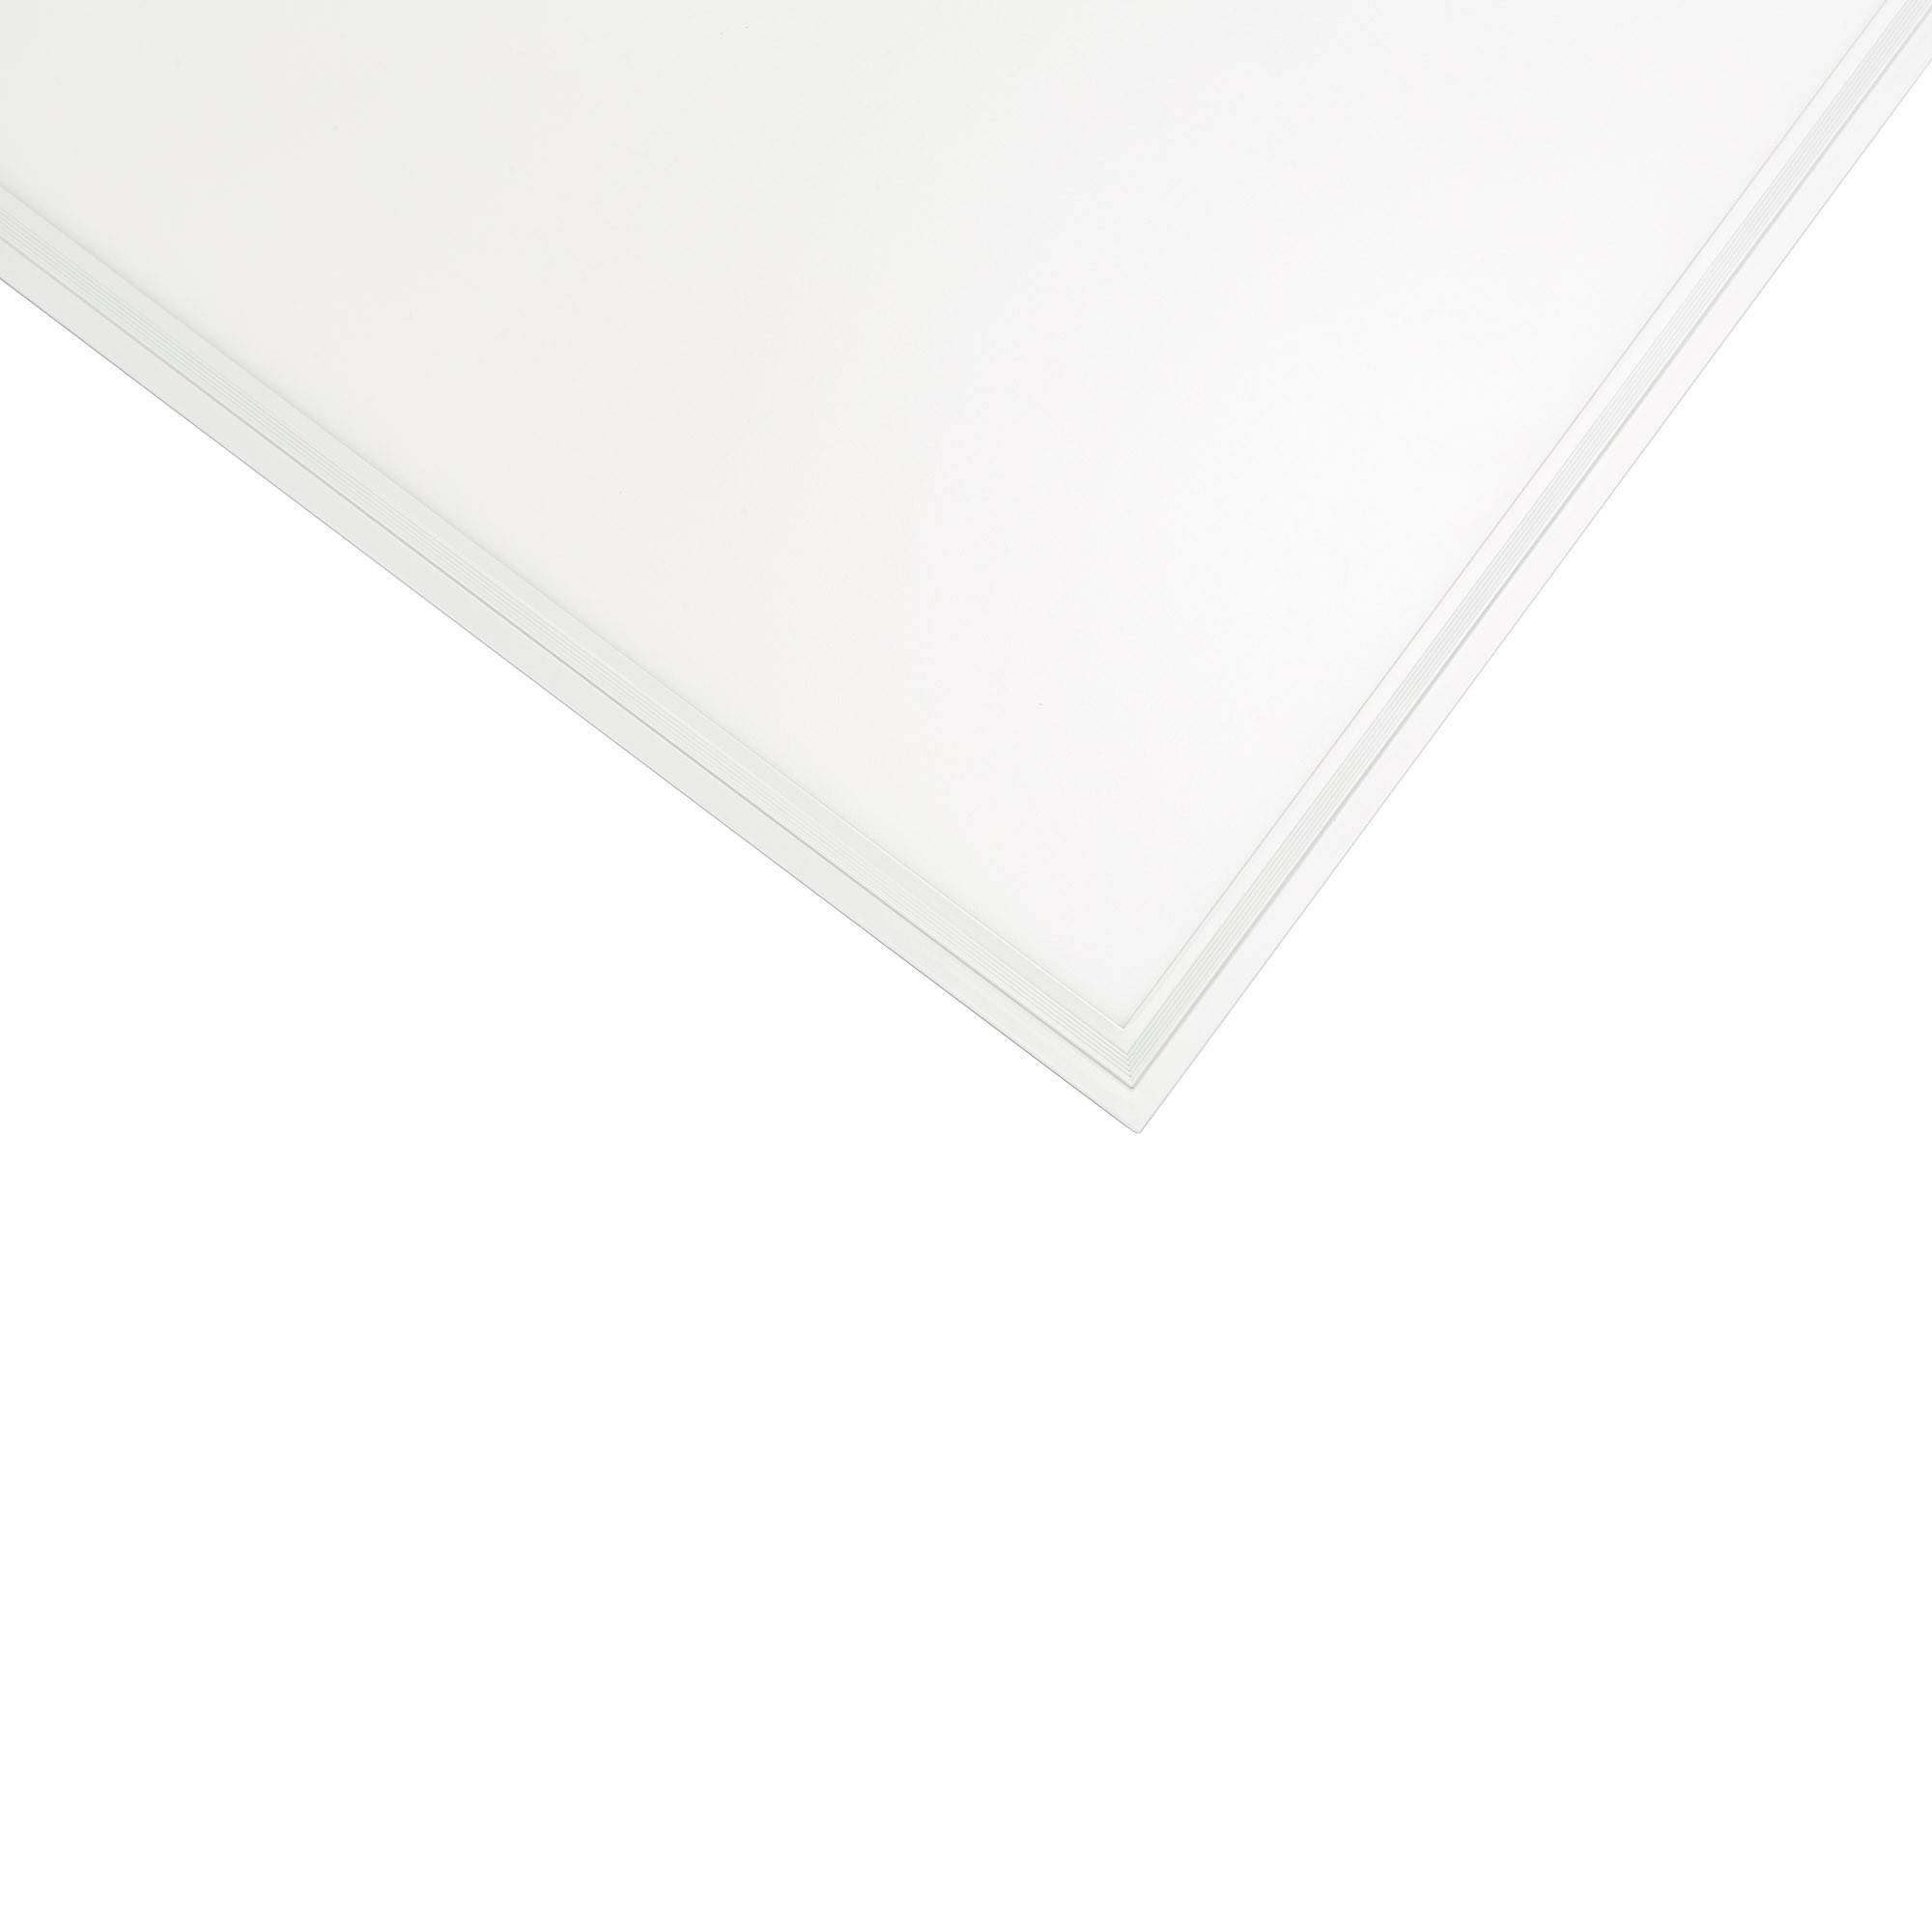 LED LIGHT PANEL - 36W - 600mm X 600mm - 5000K - 9mm FRAME